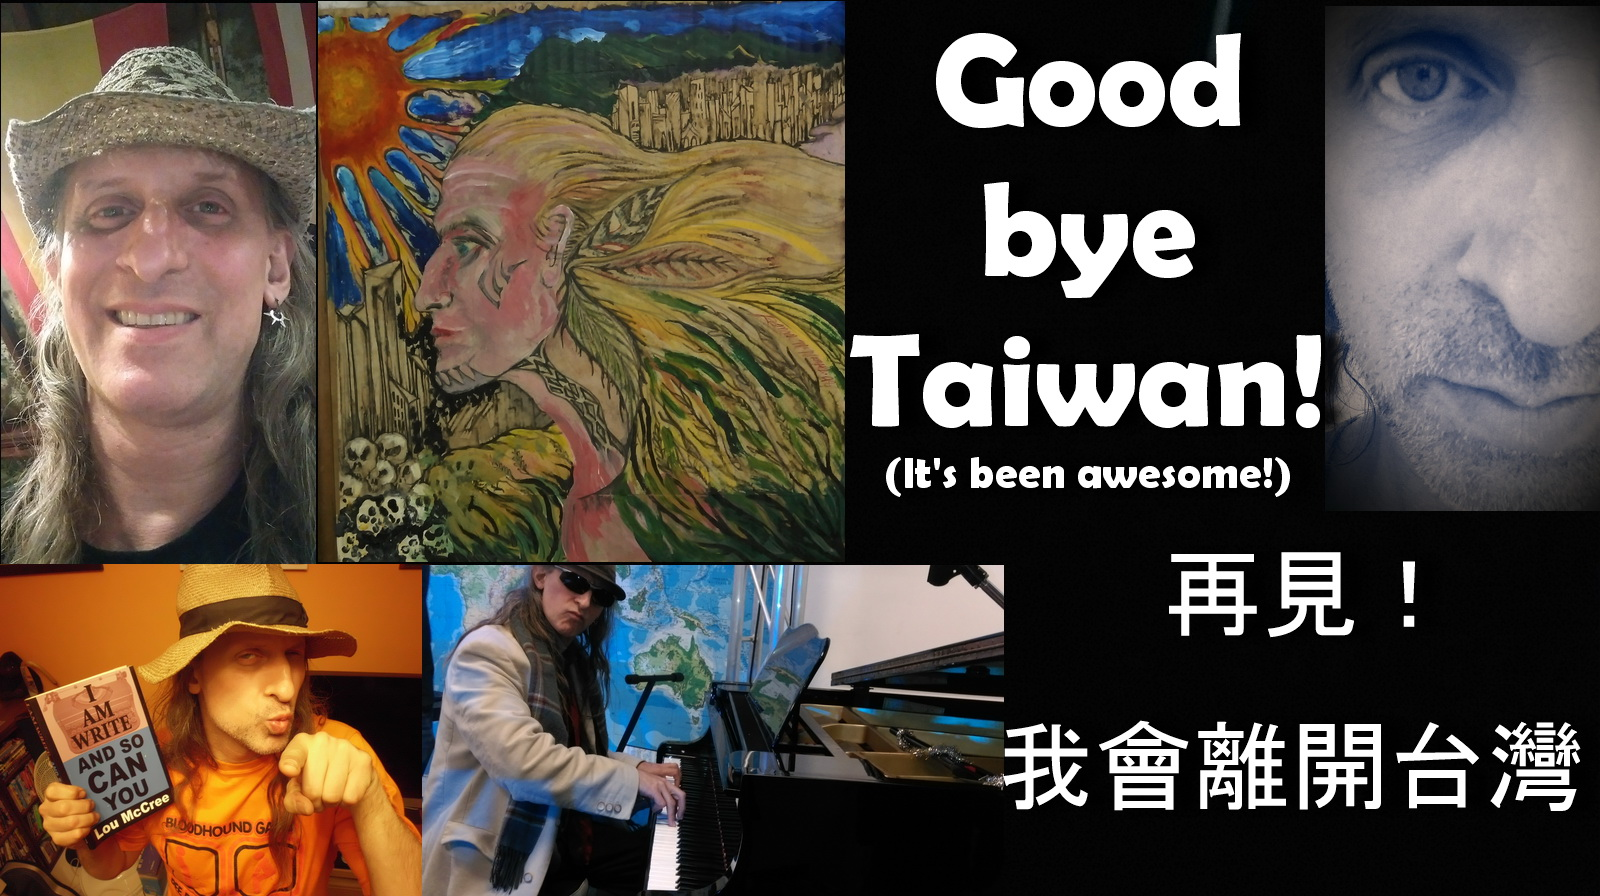 Will leave Taiwan PIC